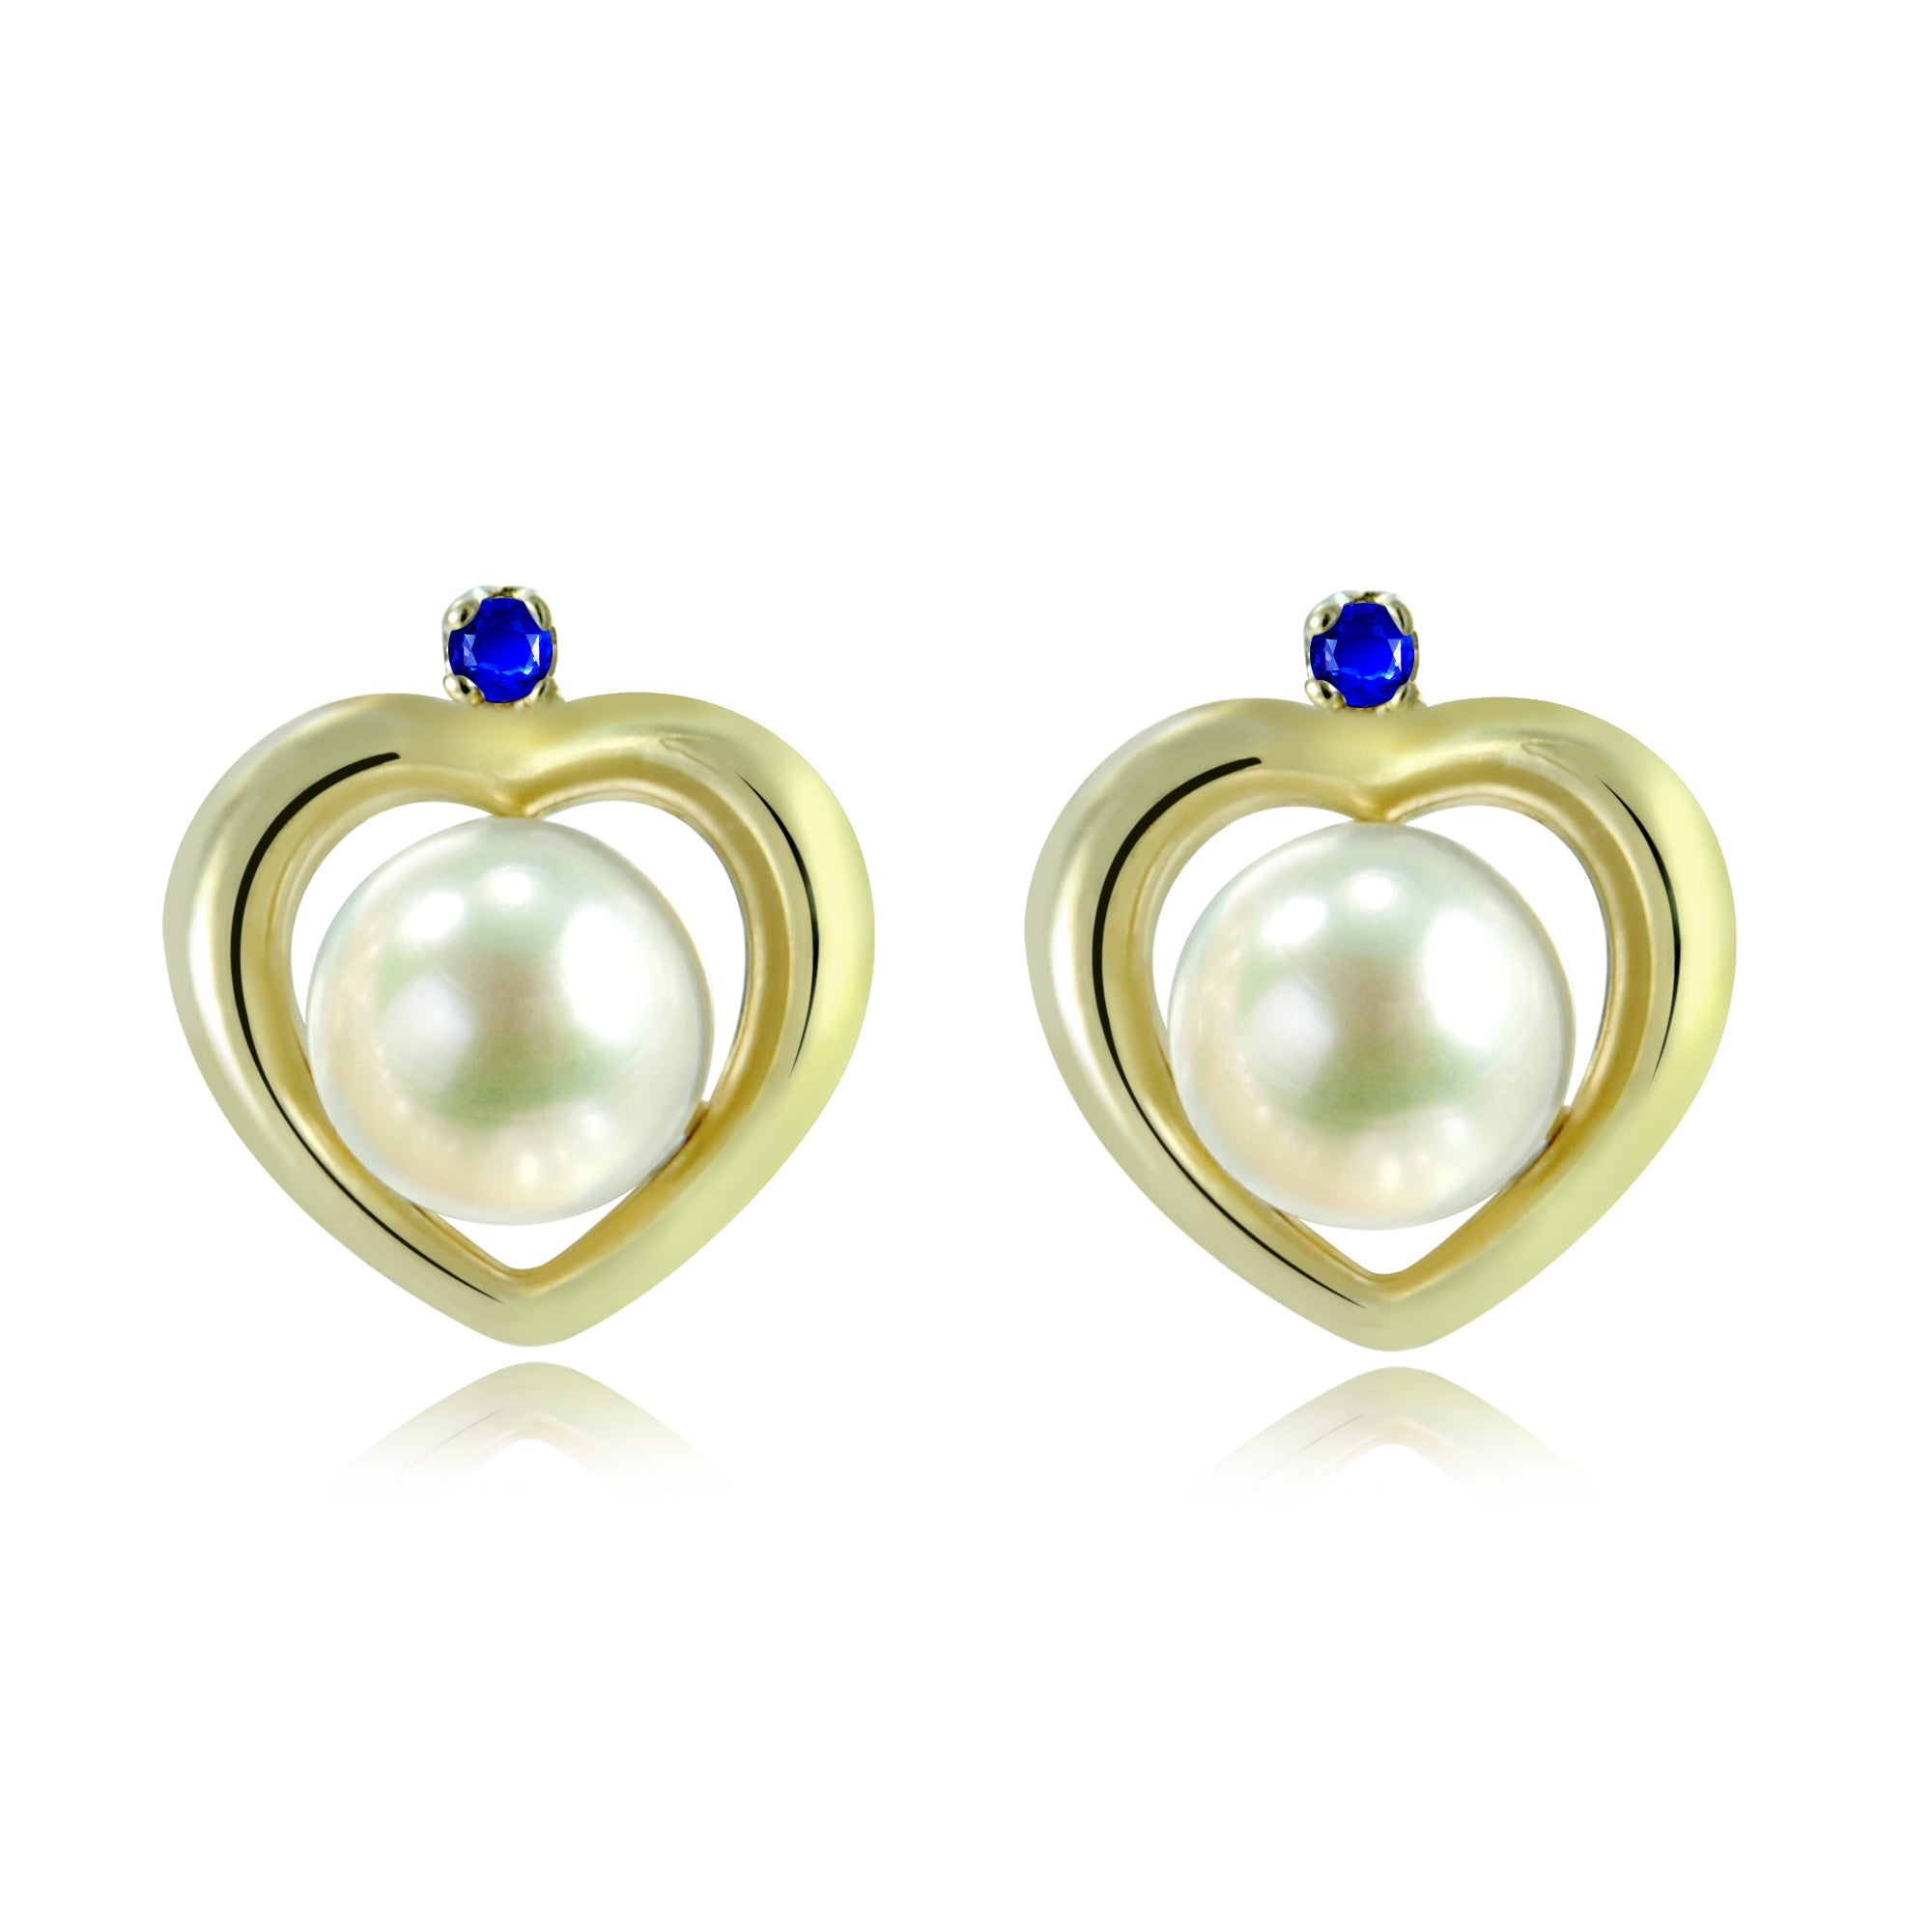 Round 9mm Genuine Blue Sapphire 10k Yellow Gold Stud Earrings